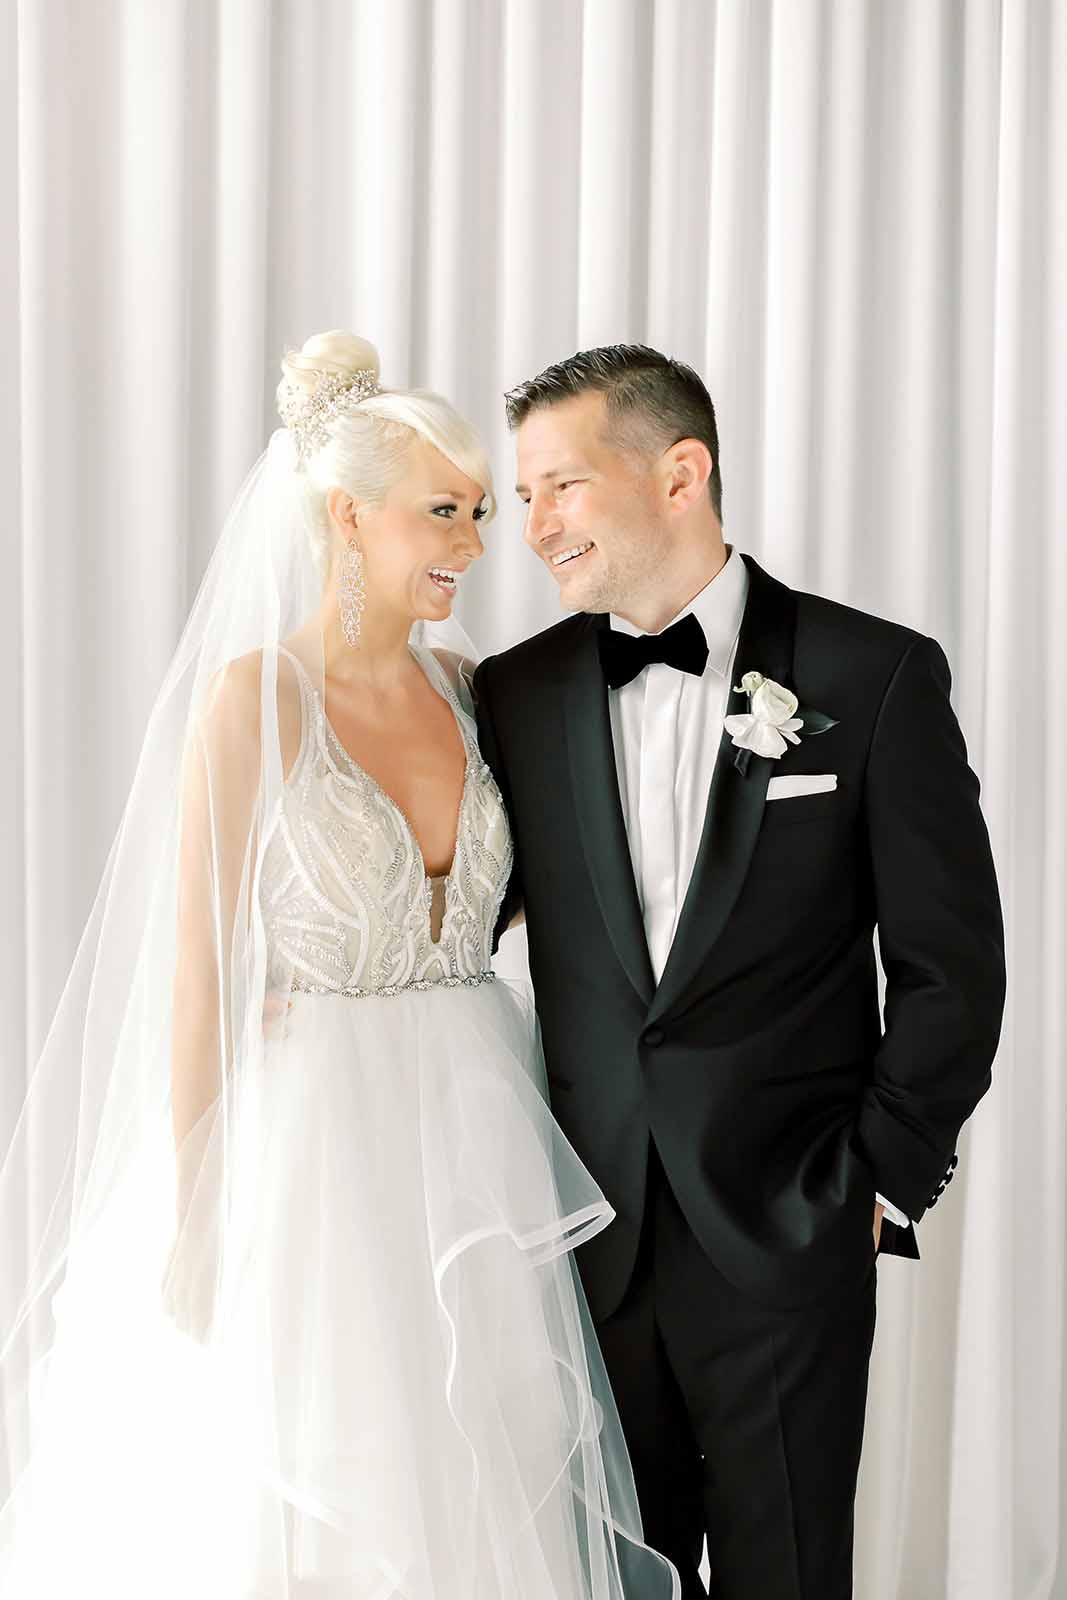 Bride and groom smiling at each other on the day of their wedding, groom in a tux and bride with a veil and a formal ballgown dress